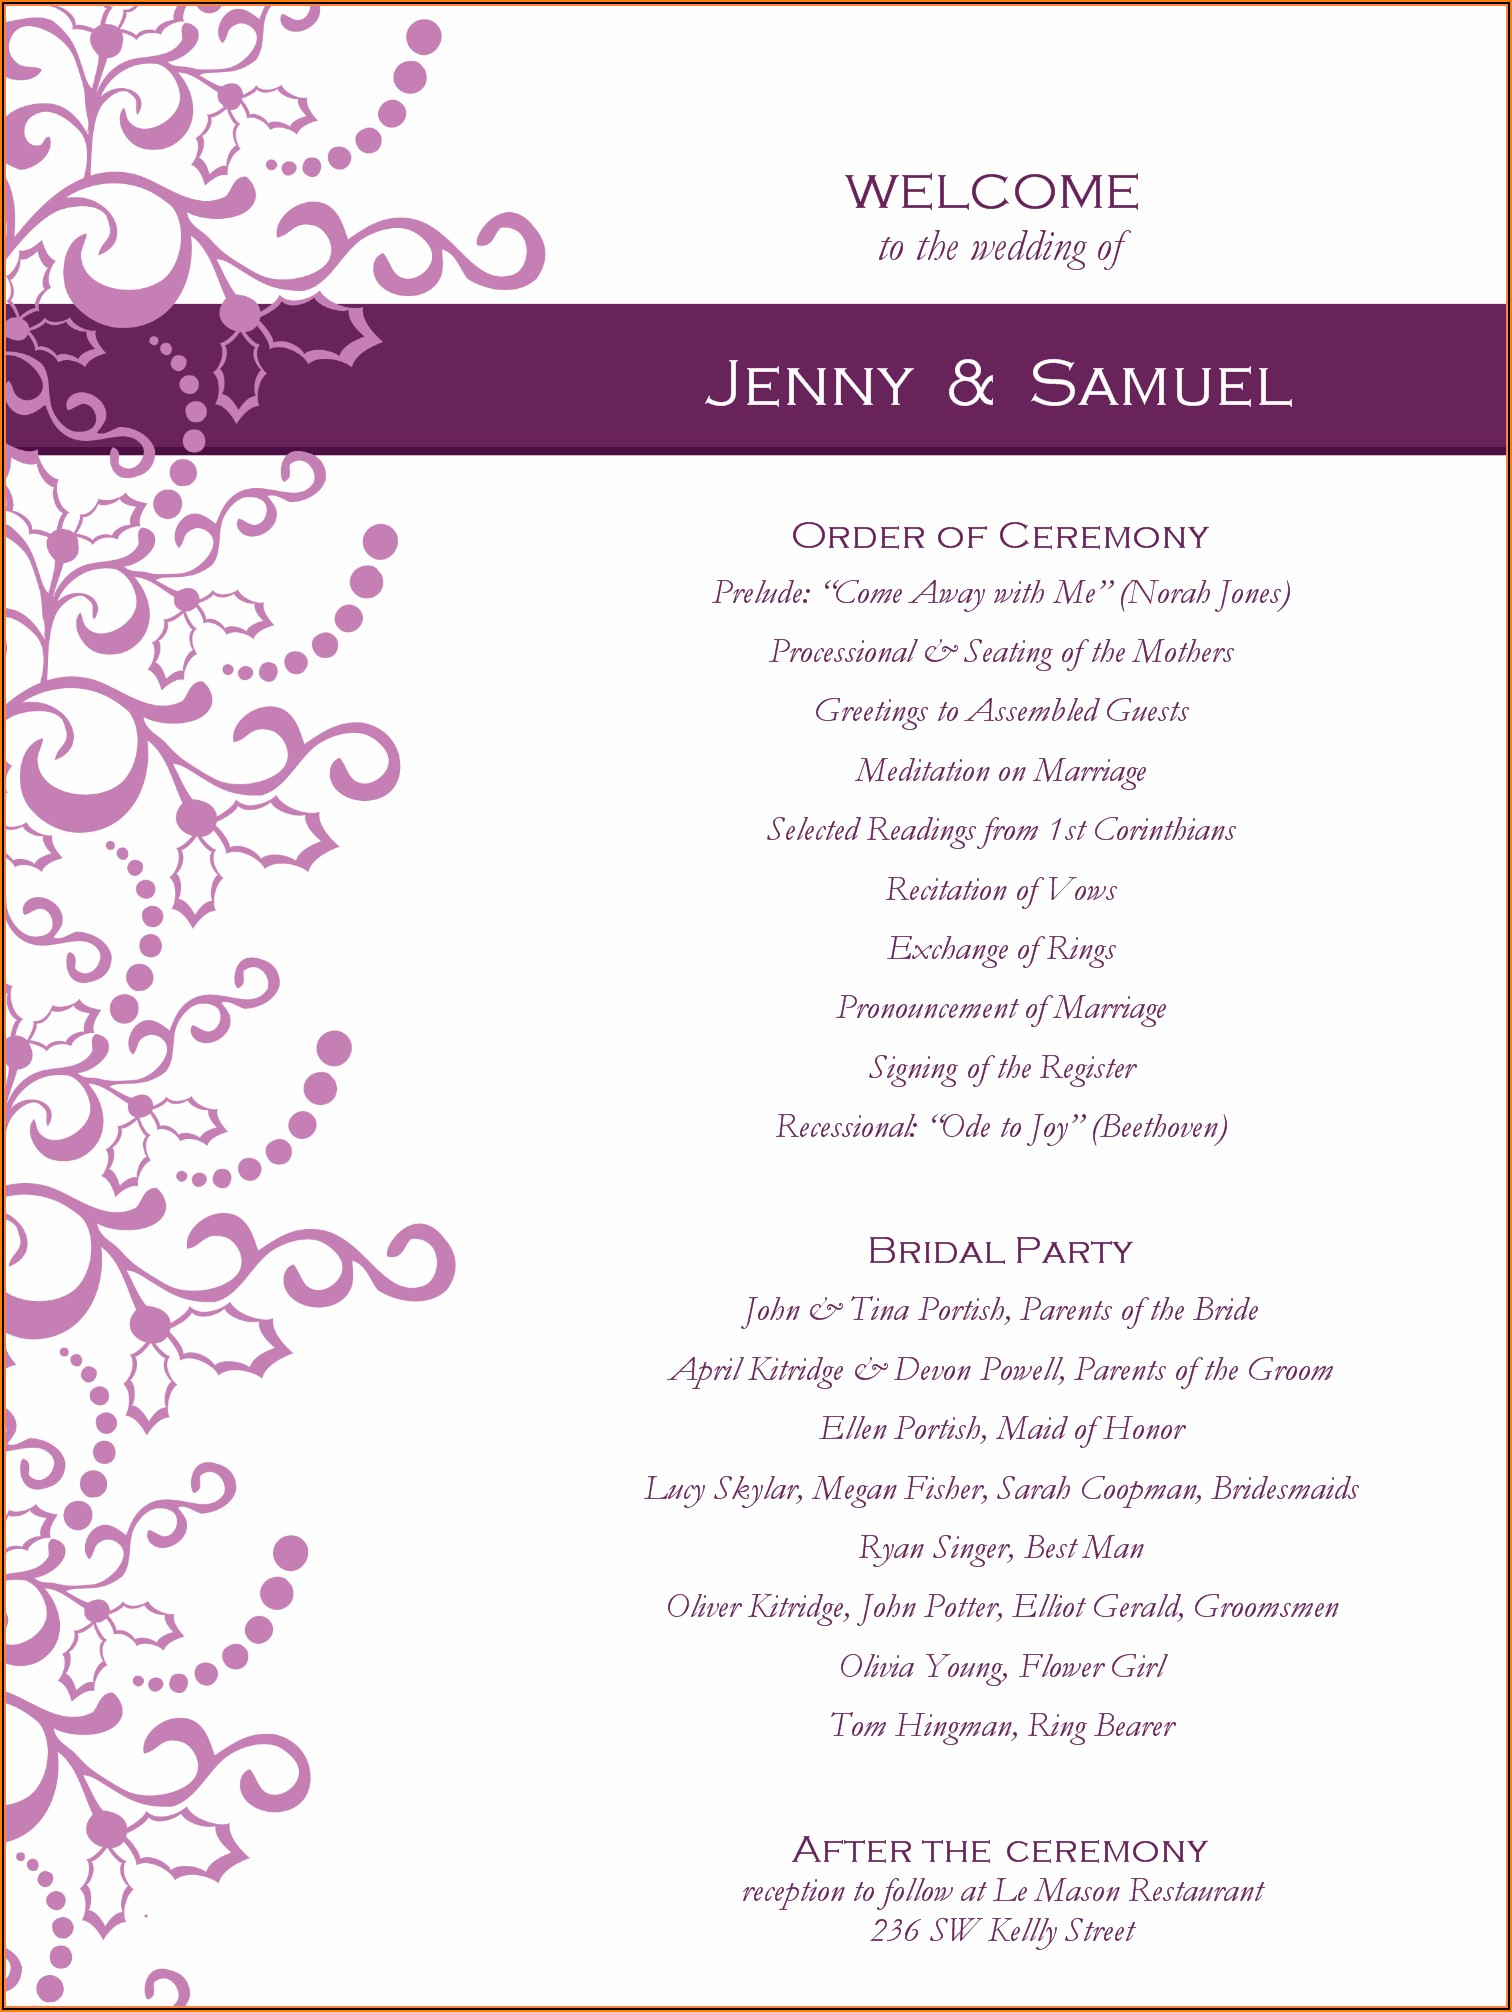 Graduation Party Program Layout